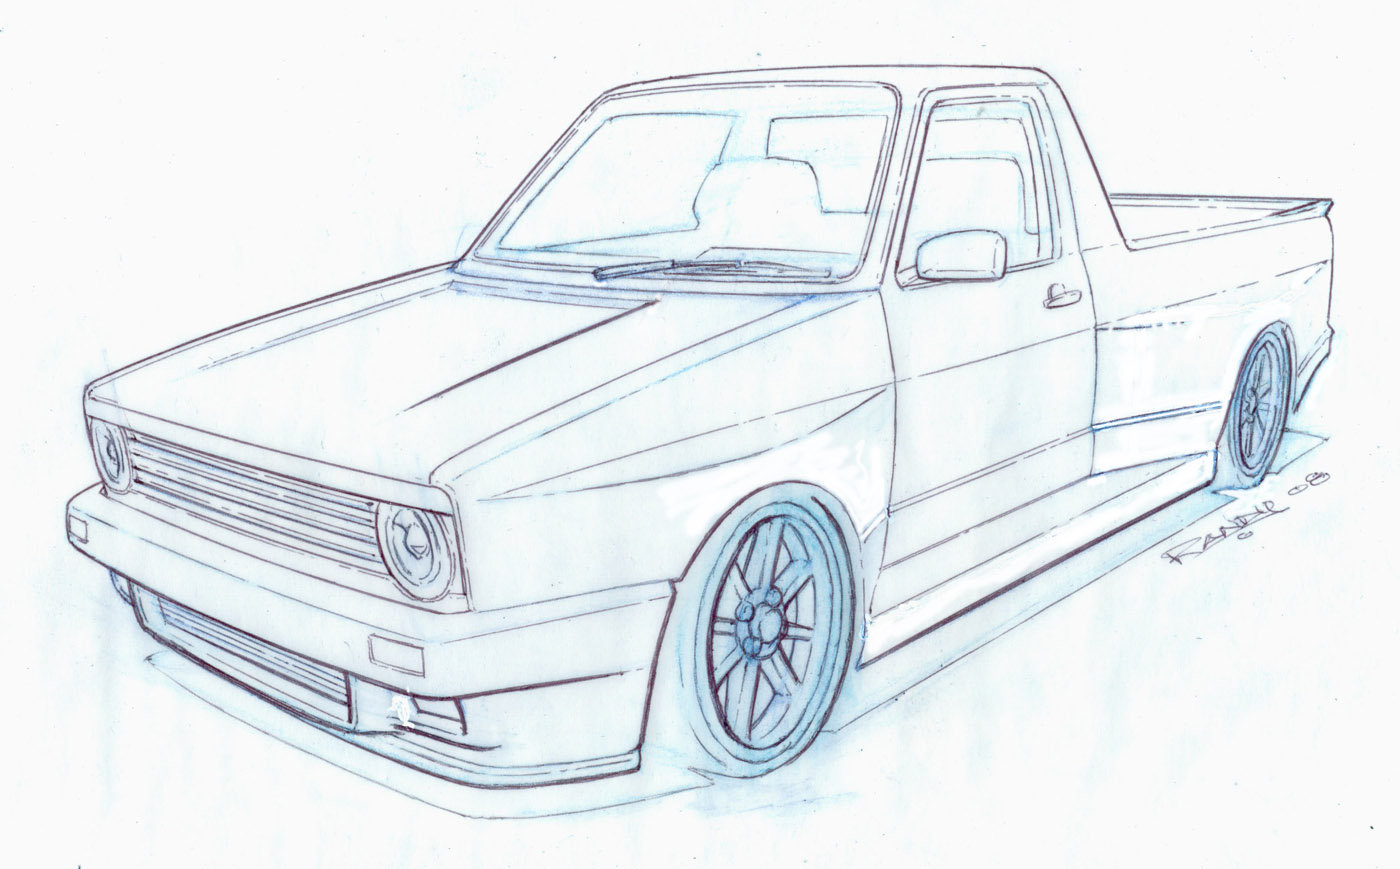 Caddy Drawing At Free For Personal Use Vw Electrical Diagram 1400x869 Mk1 V Dub By Tincap